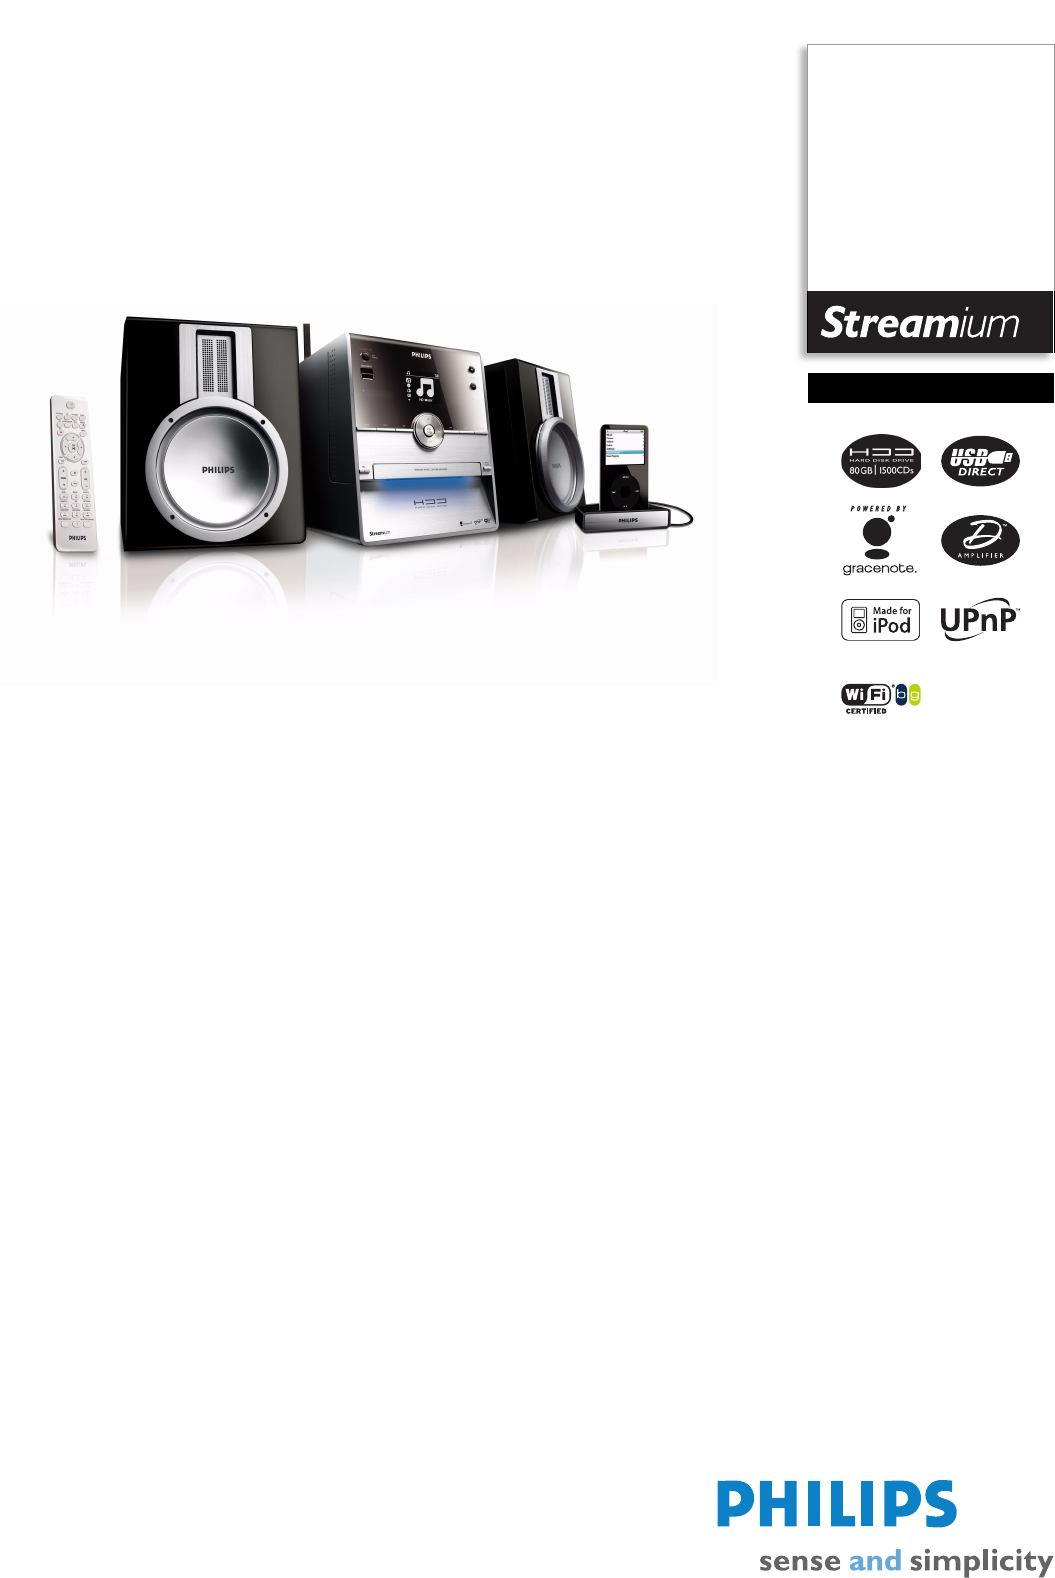 philips stereo system wac3500d user guide manualsonline com rh audio manualsonline com Philips TV Manual Philips TV User Manual